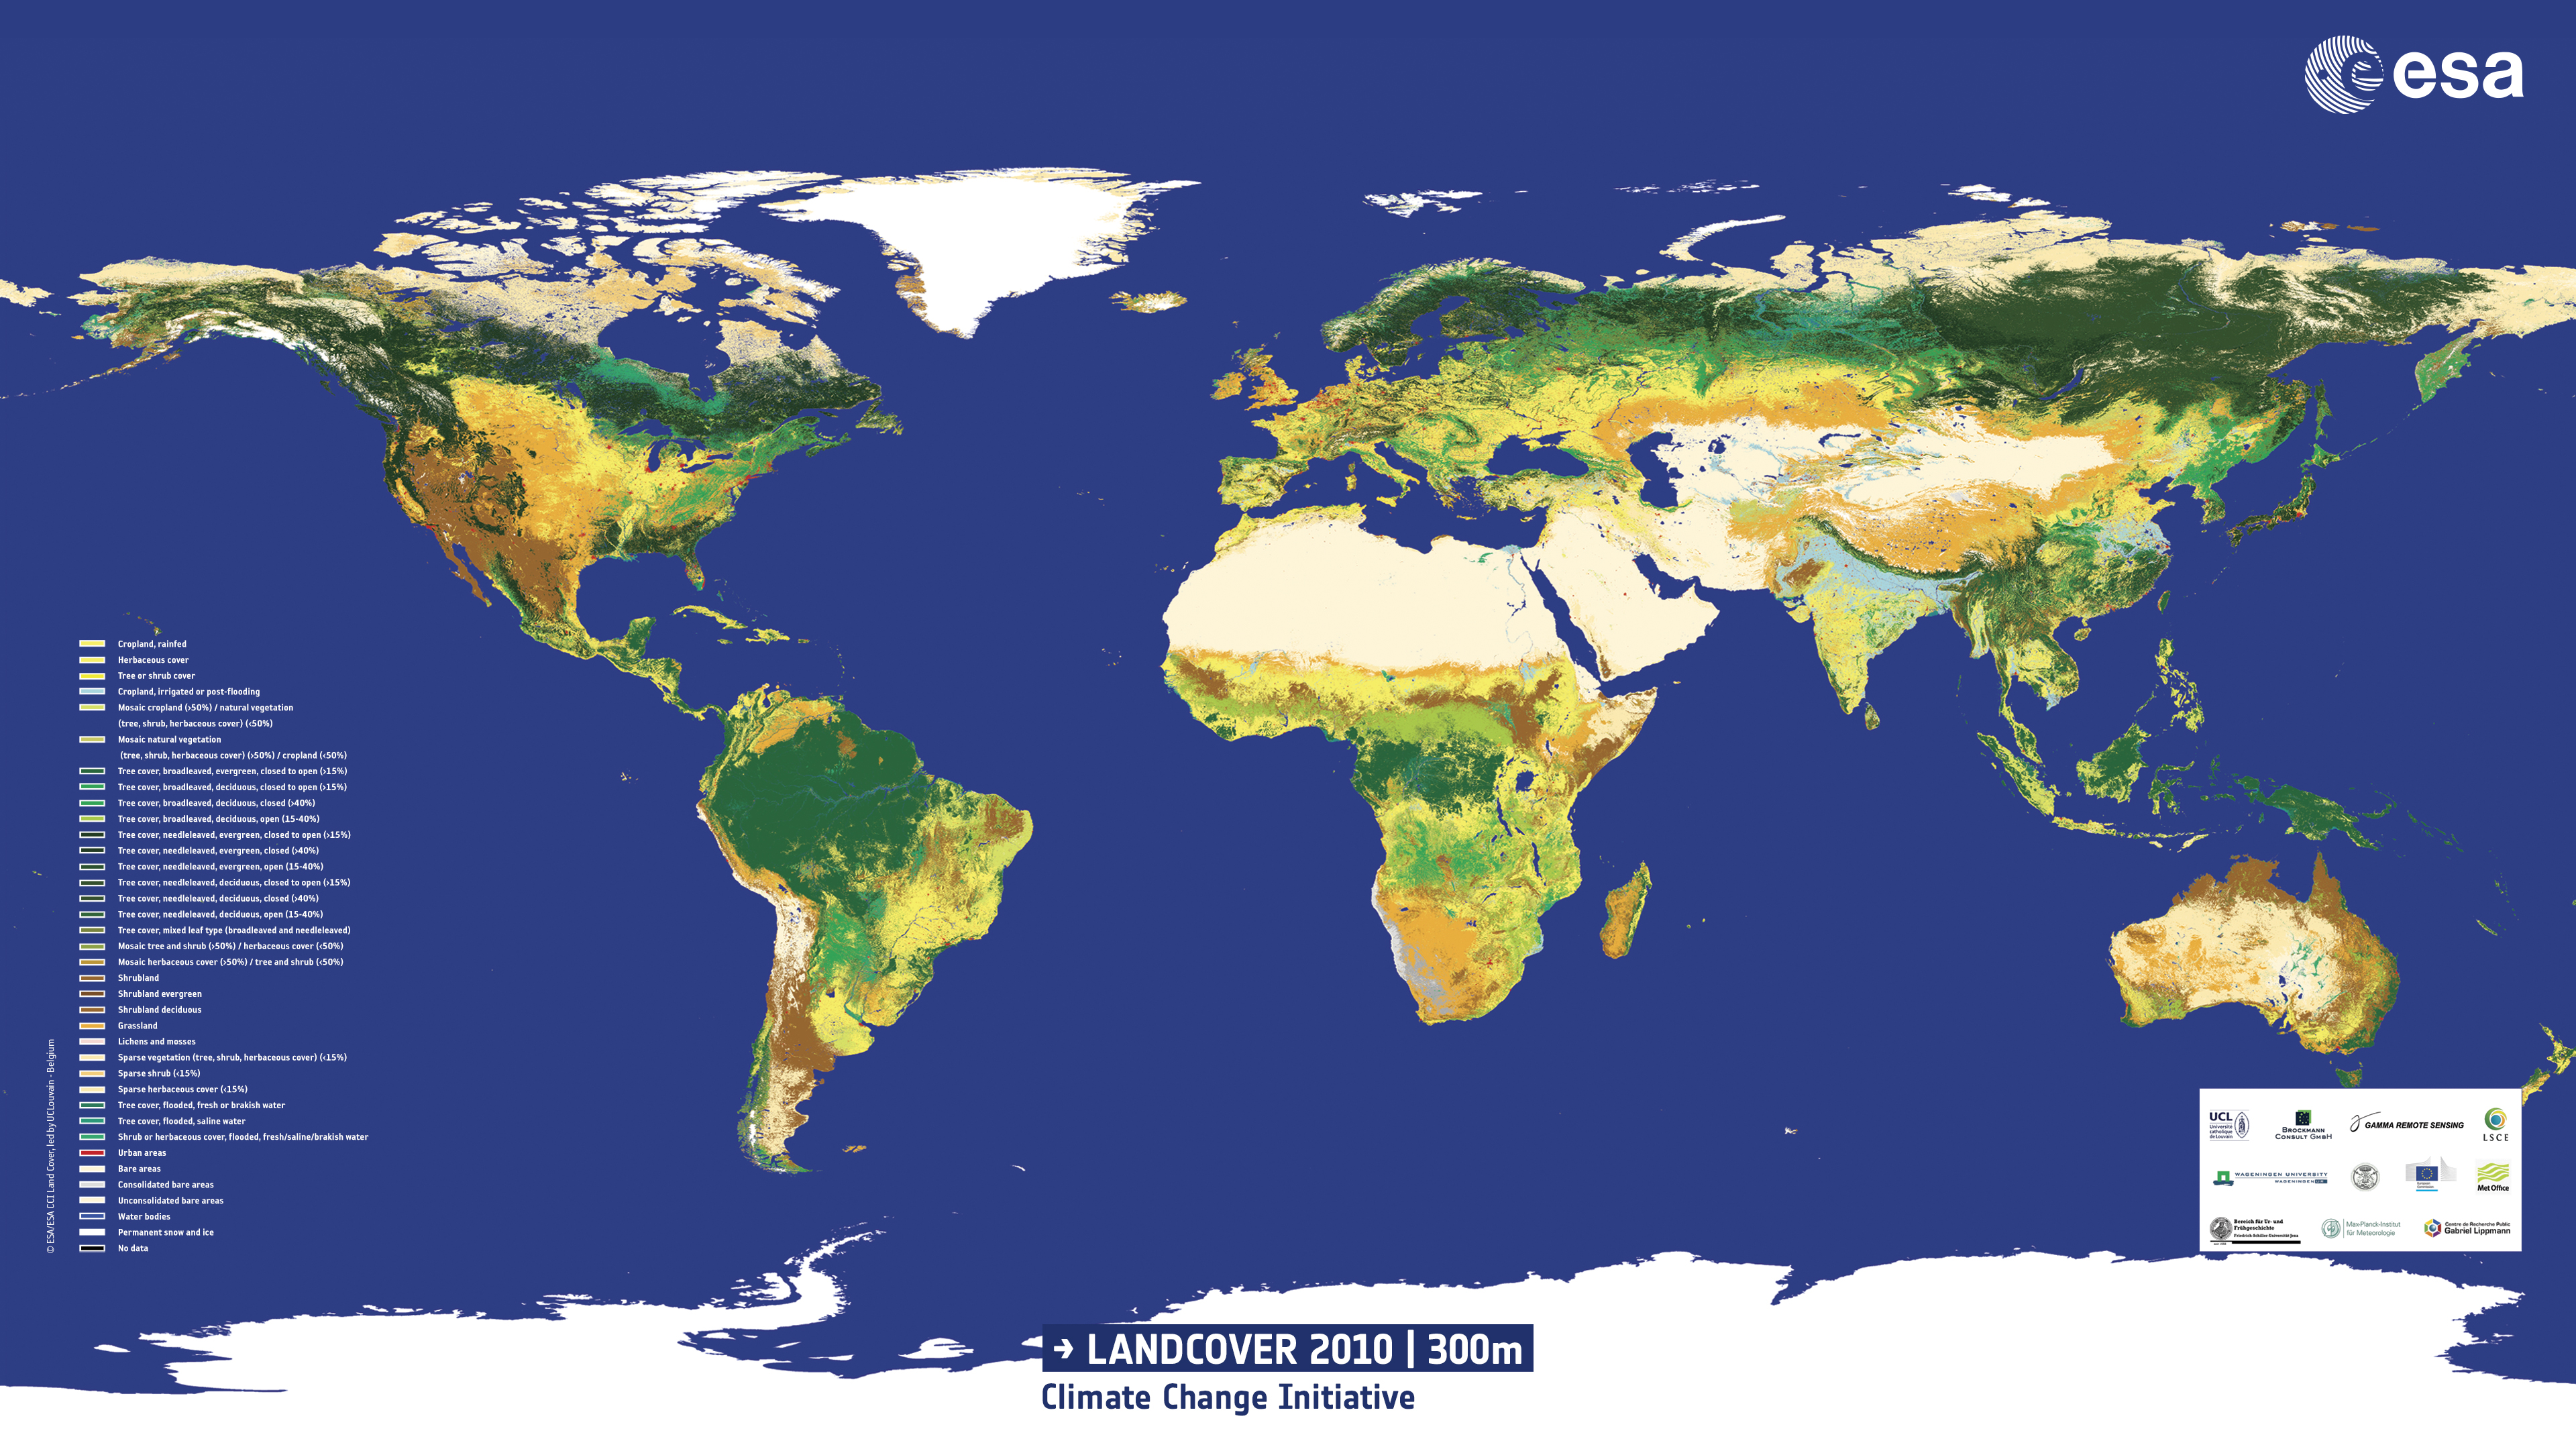 Land cover and land use in environment statistics httpcdnysnewmangfxnewshires2014landcover2010g gumiabroncs Choice Image